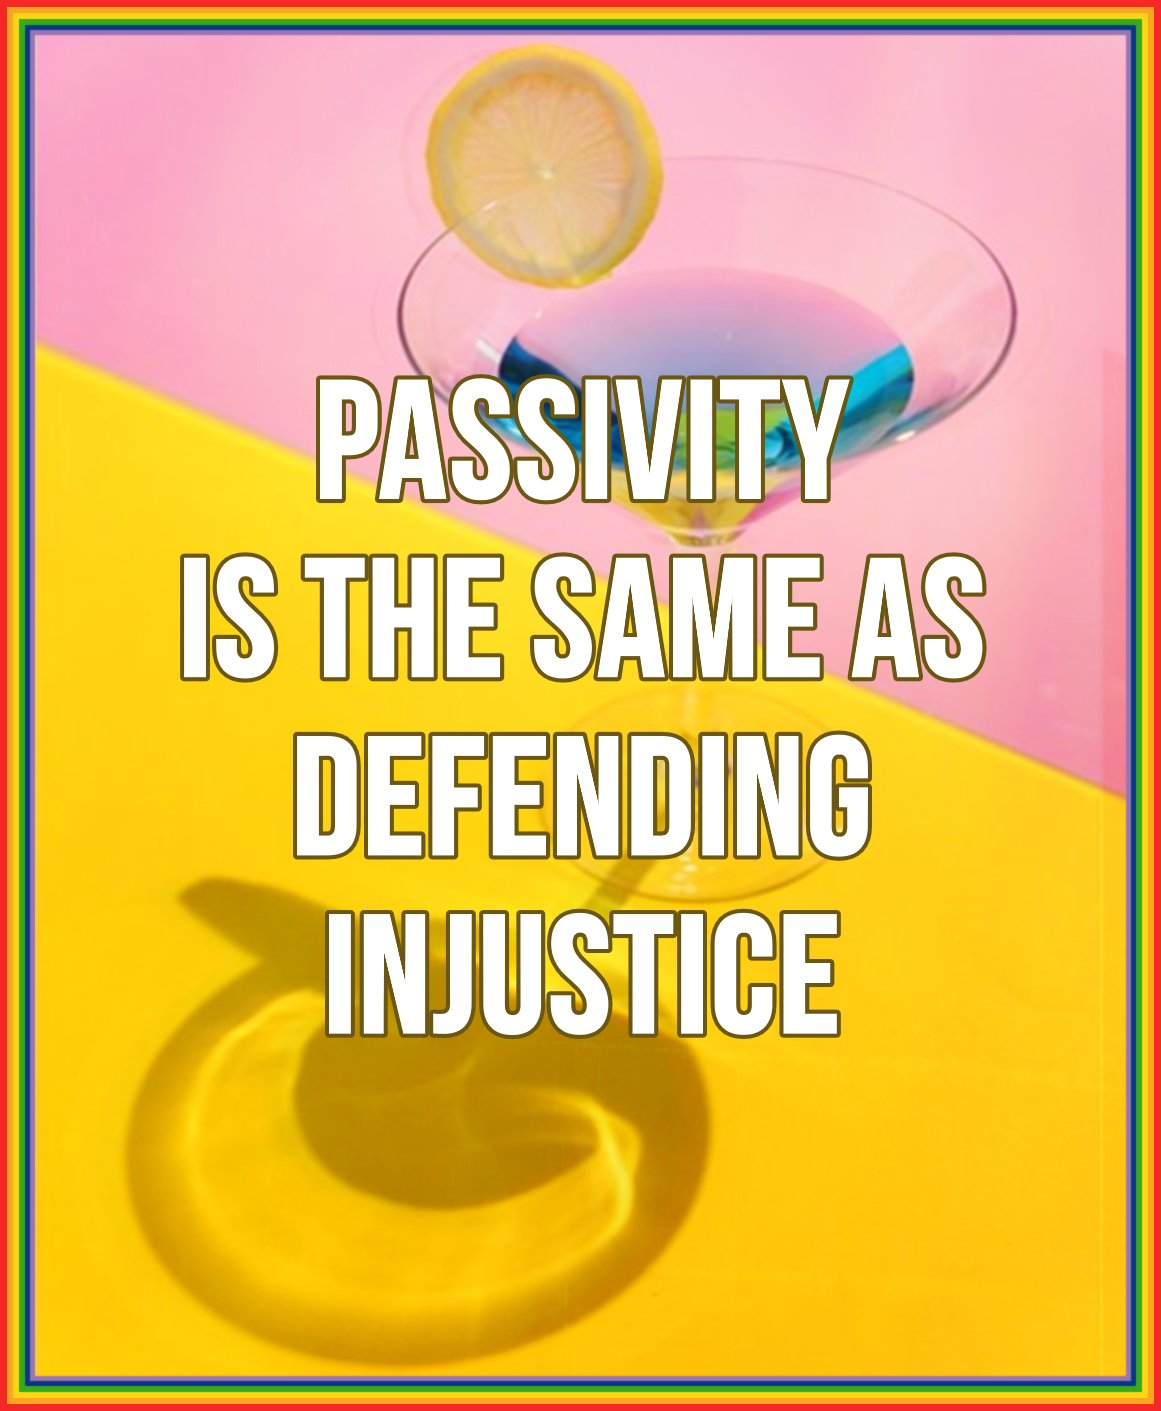 Quote Passivity is the same as defending injustice. Deepak Chopra